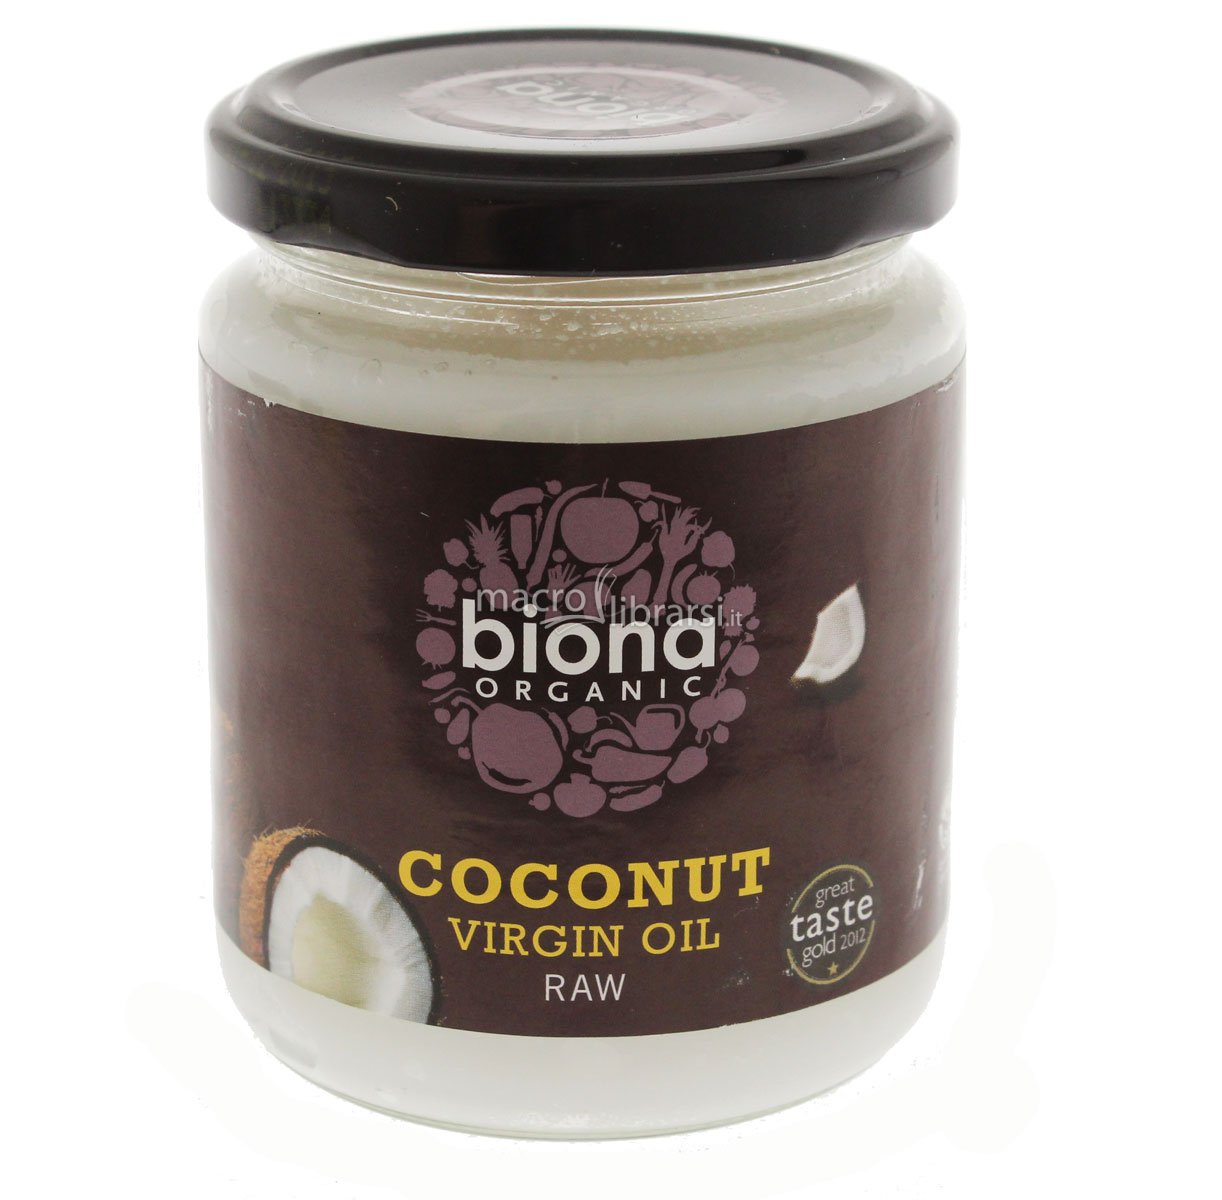 coconut-virgin-oil-raw-olio-di-cocco-79488